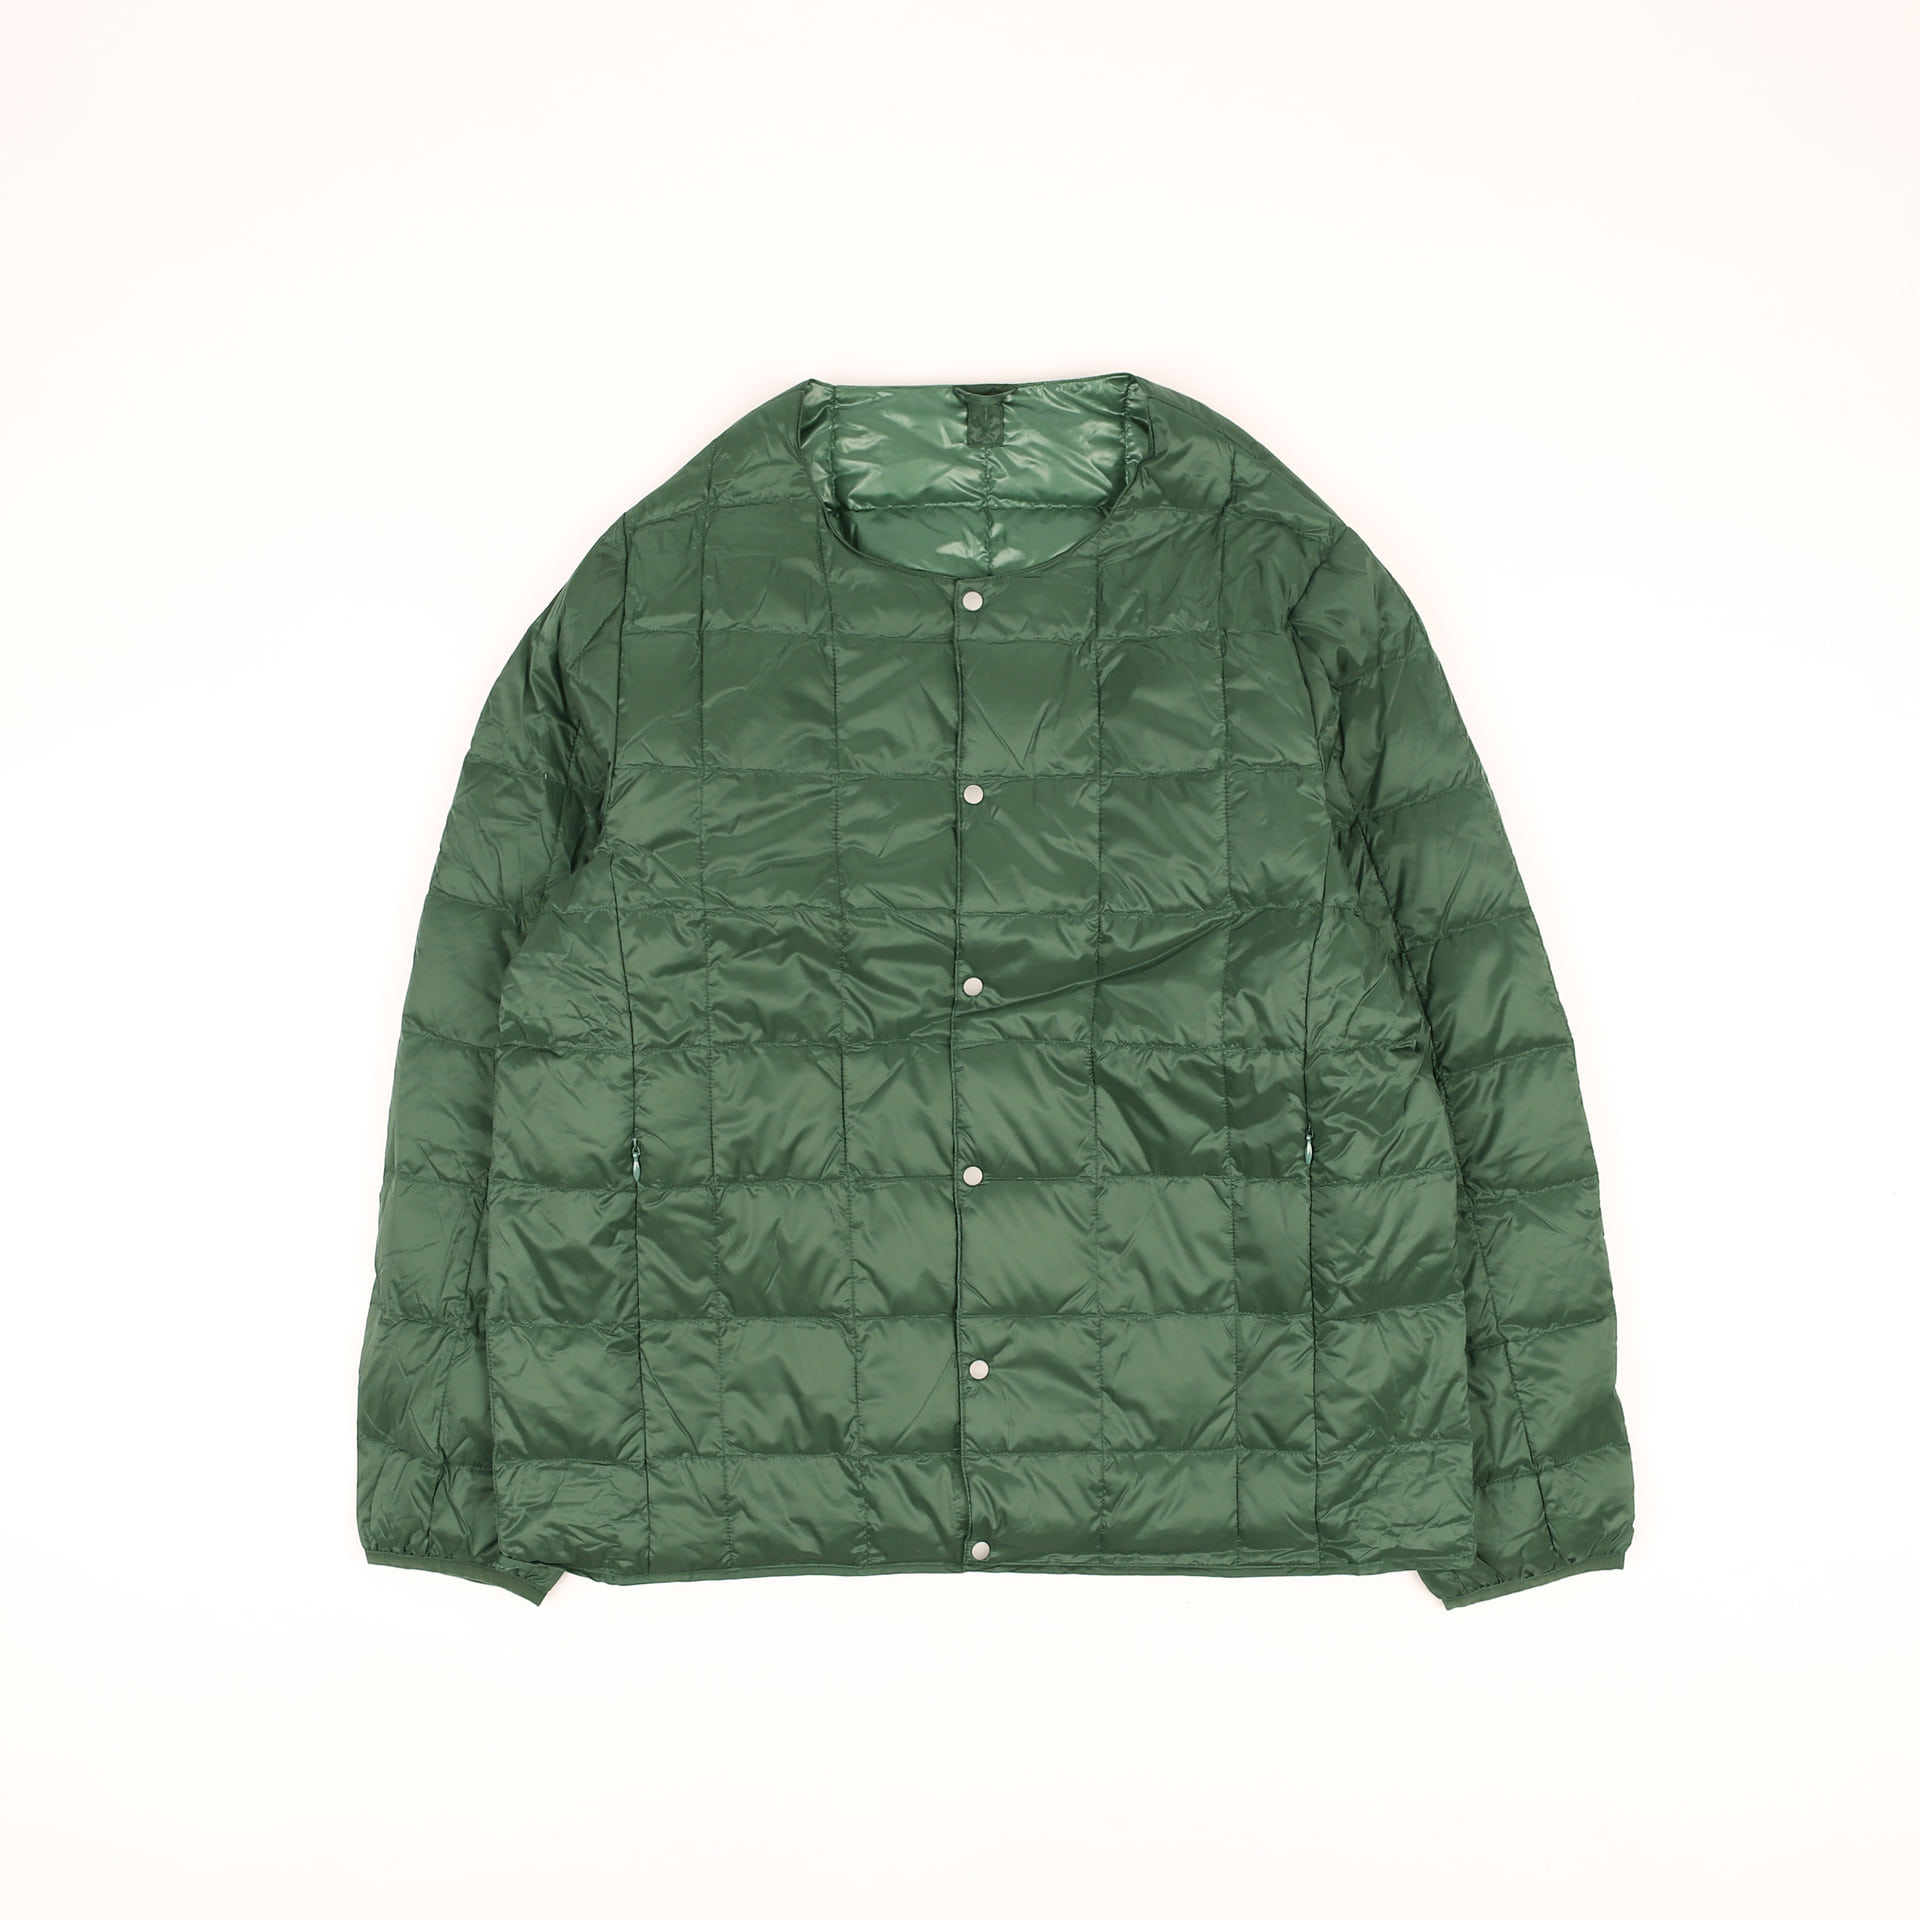 CREW NECK BUTTON DOWN JACKET TAION-104 (Green)